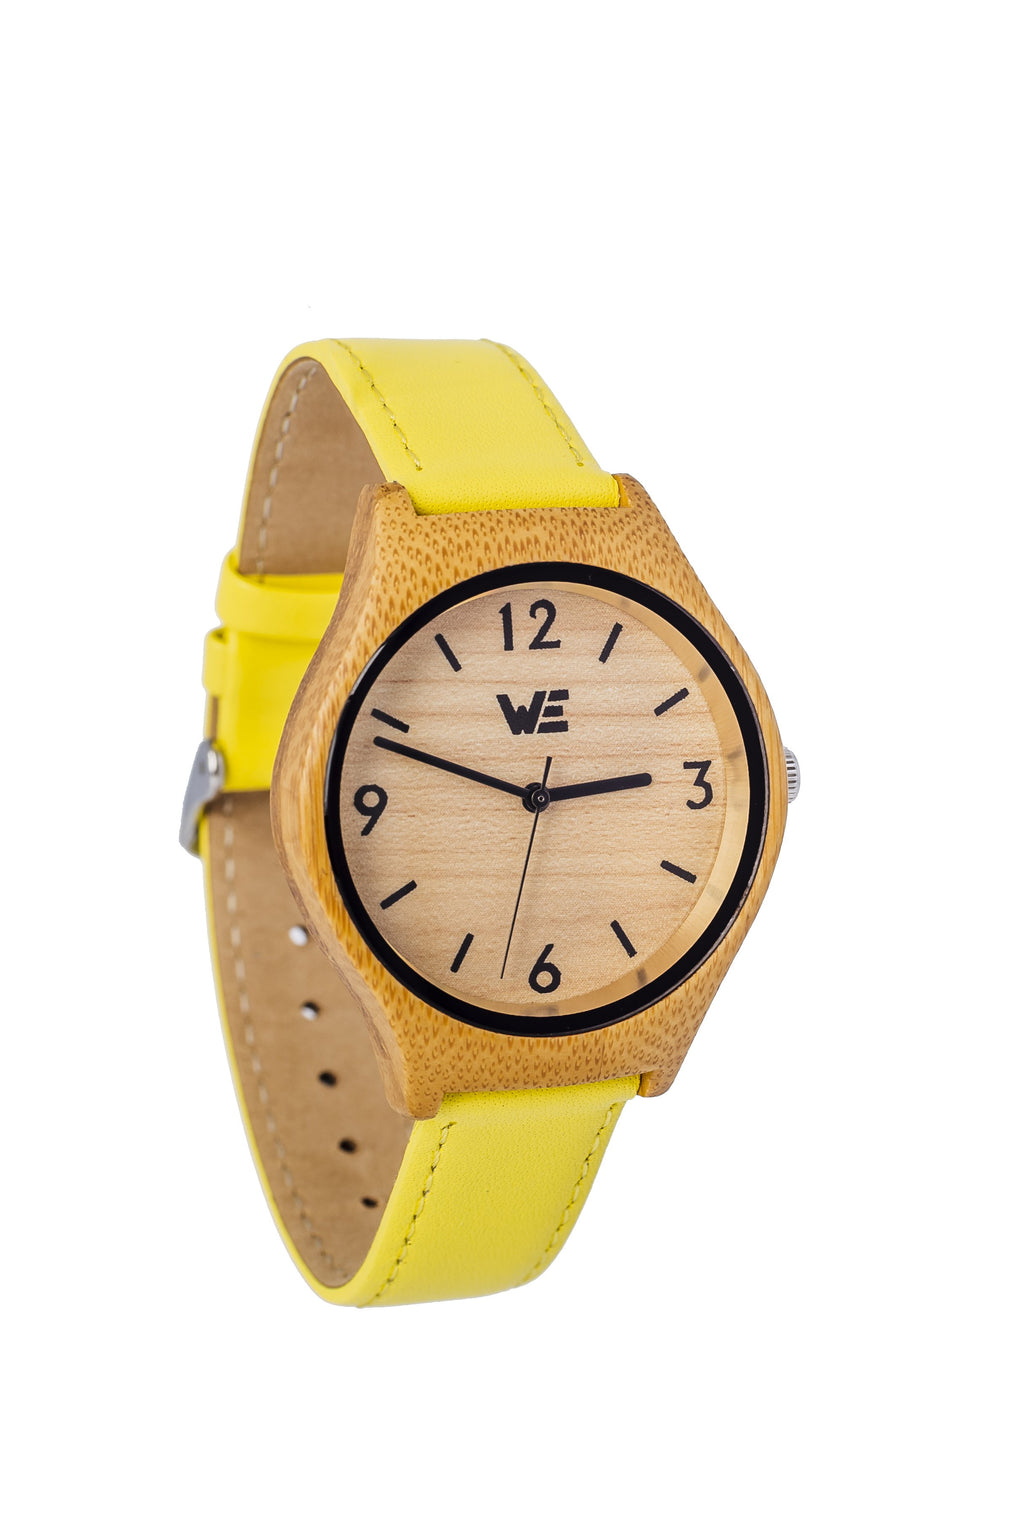 Coco Cabana (Yellow) - Wooden Element